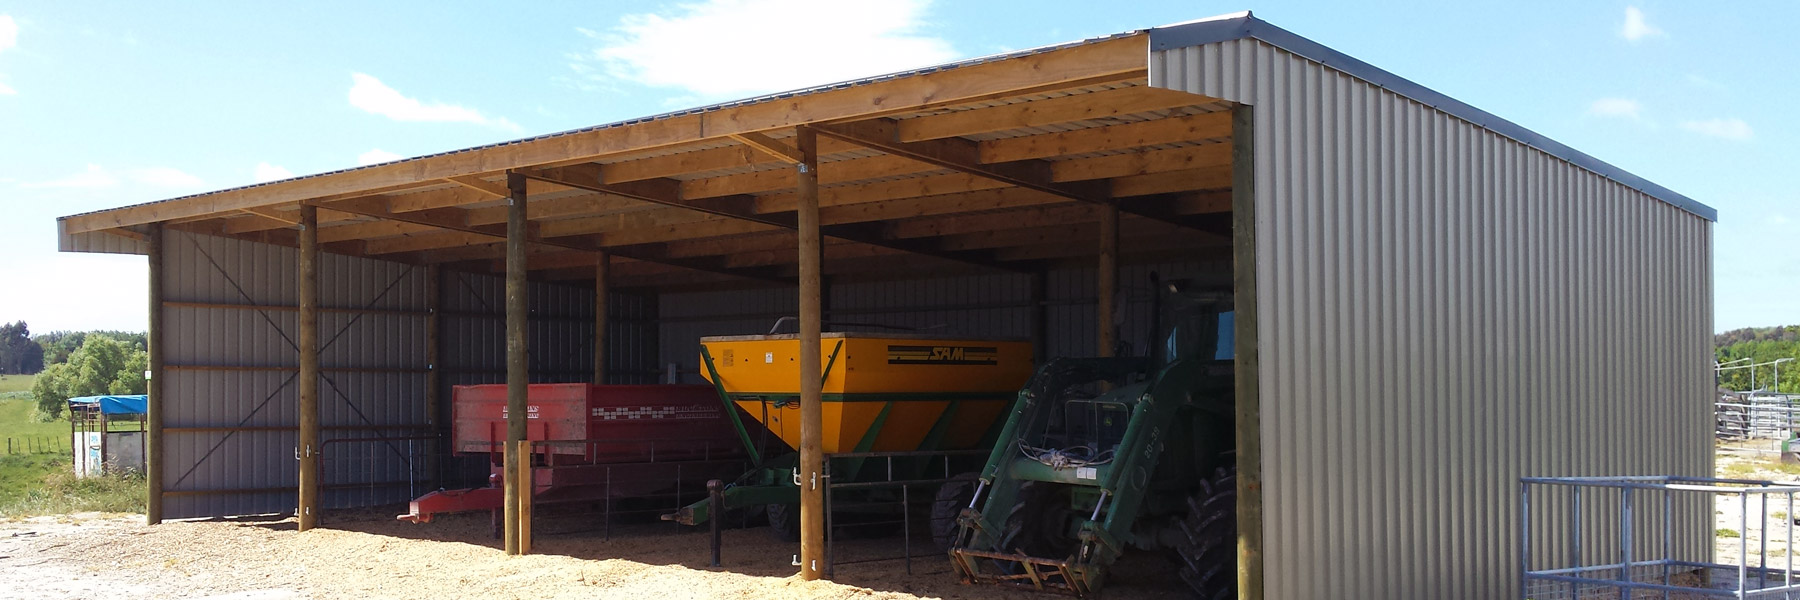 Machinery Sheds - CPS Services